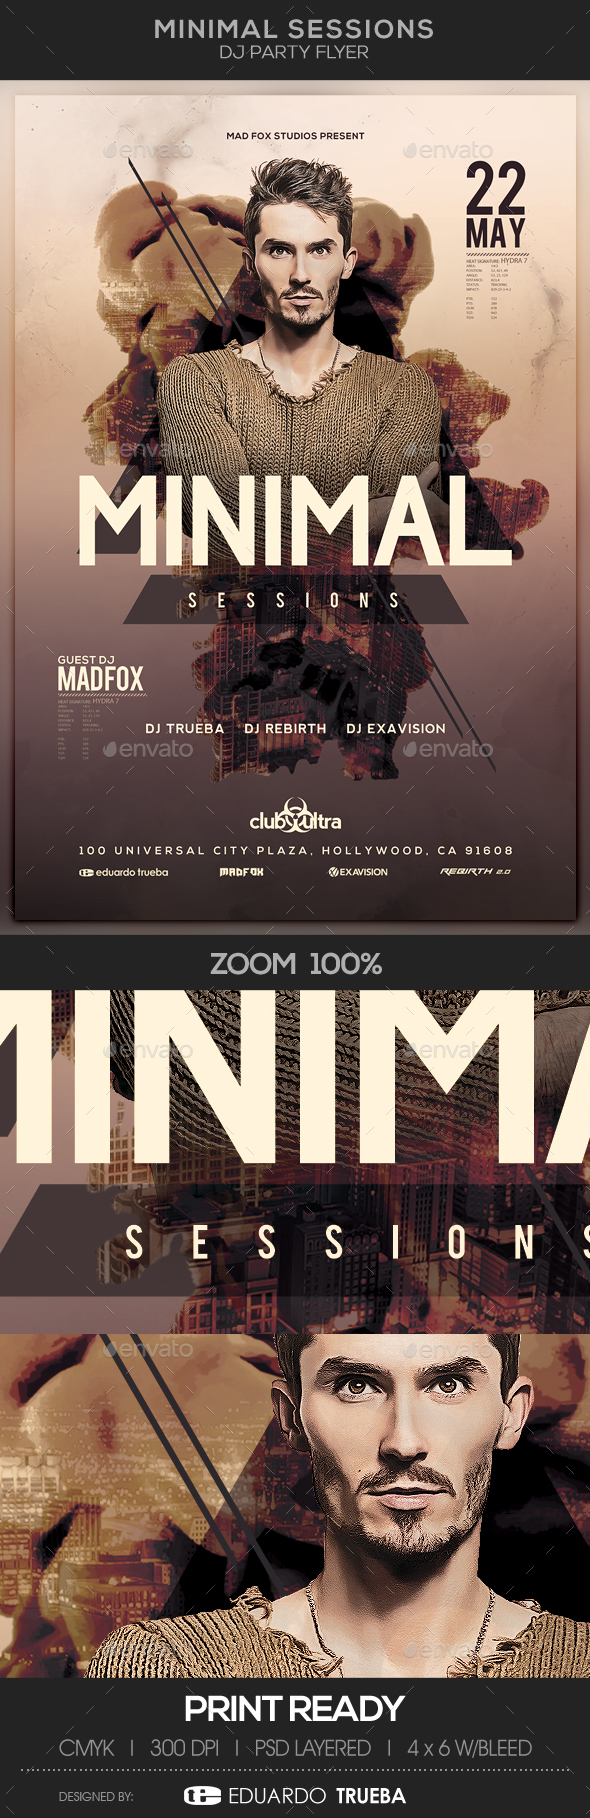 Minimal Sessions Dj Party Flyer - Clubs & Parties Events